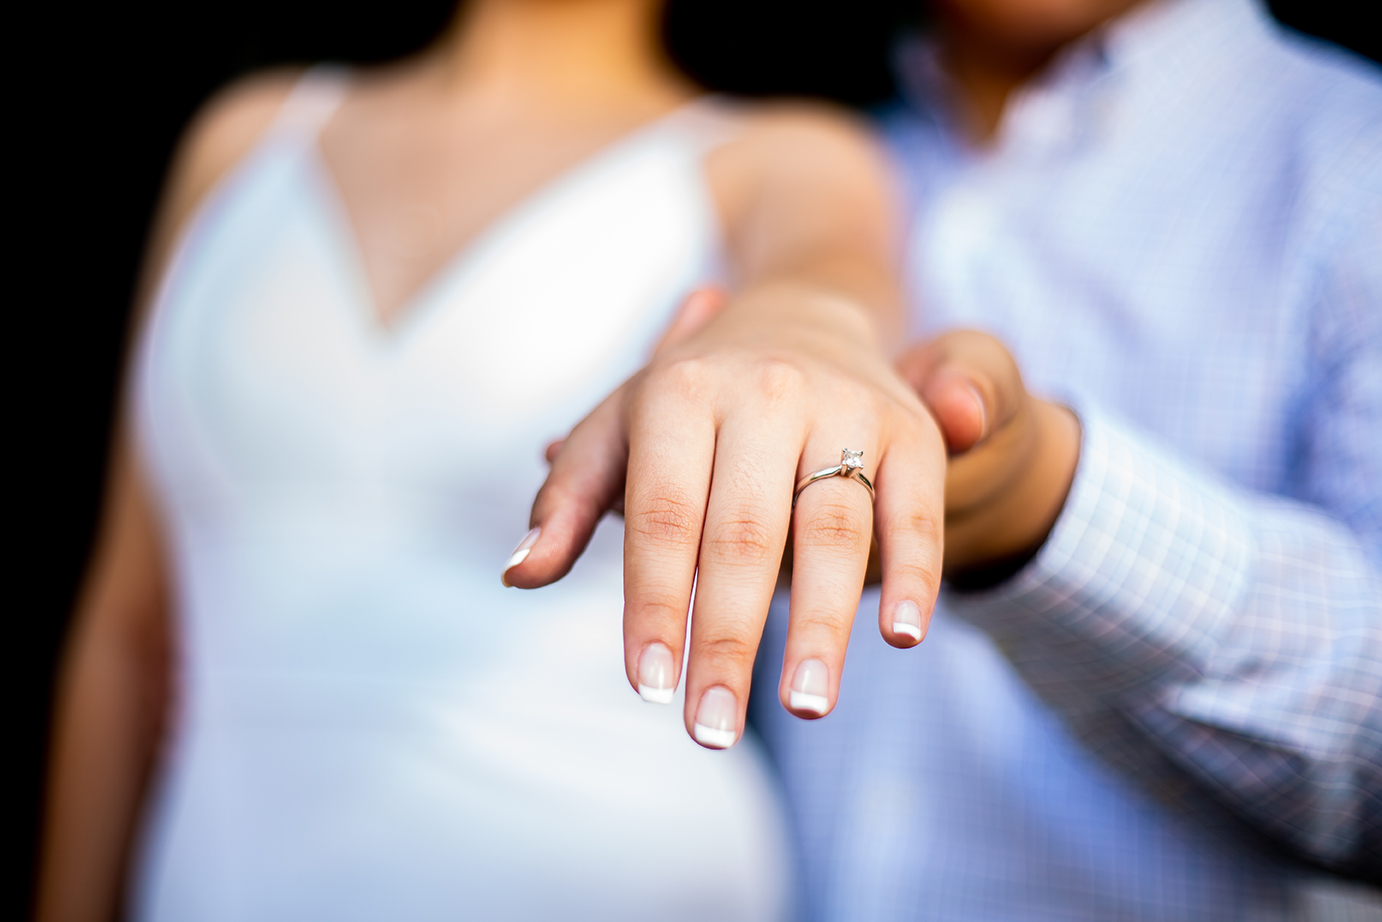 manicure nails and engagement ring